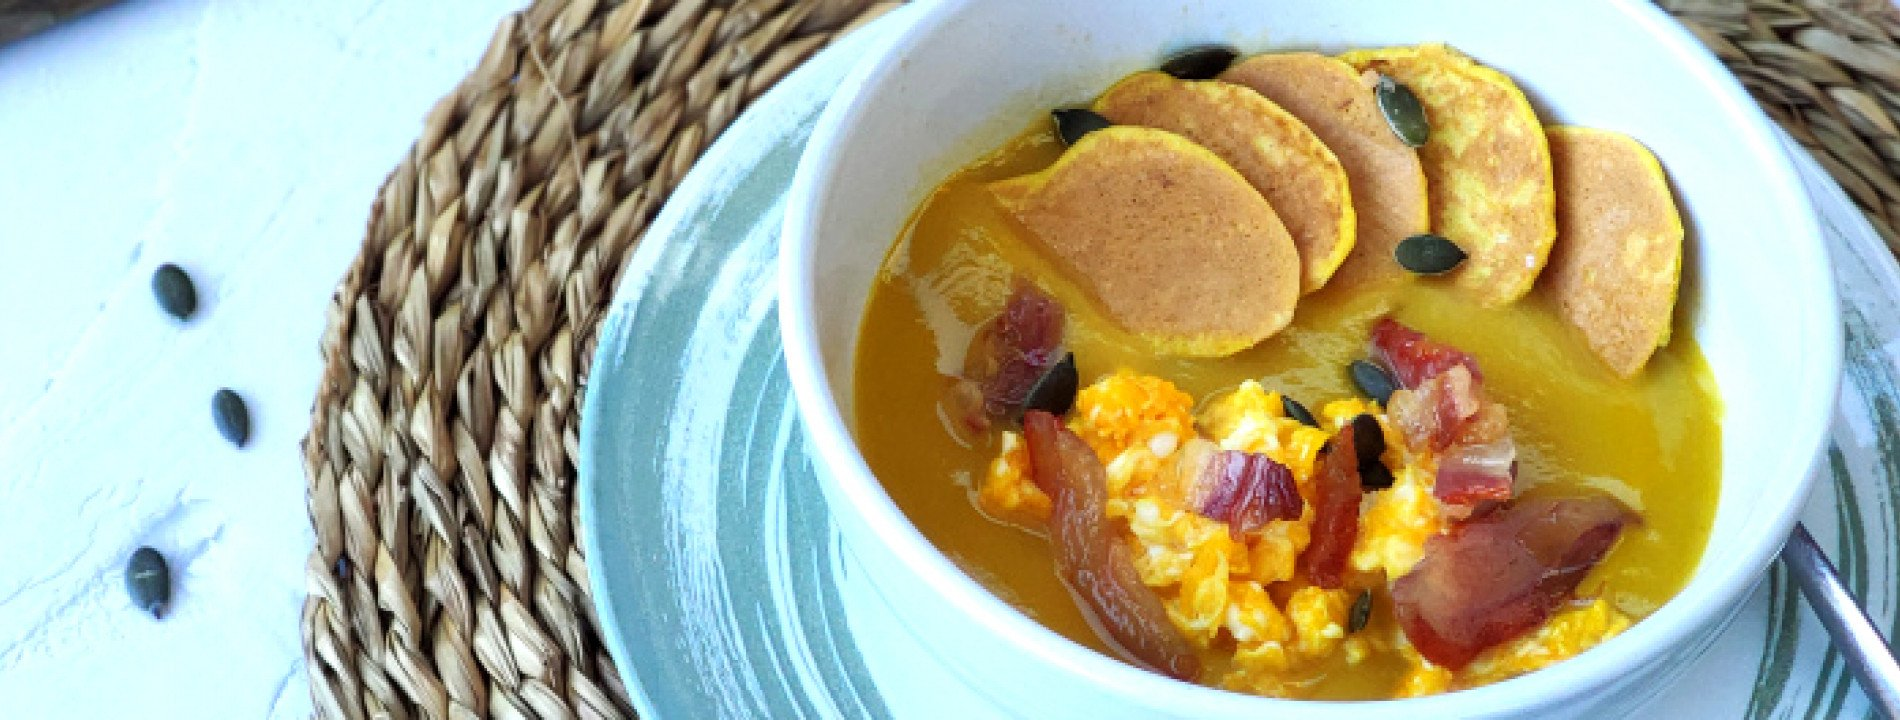 Low Carb Pancakes in Soup